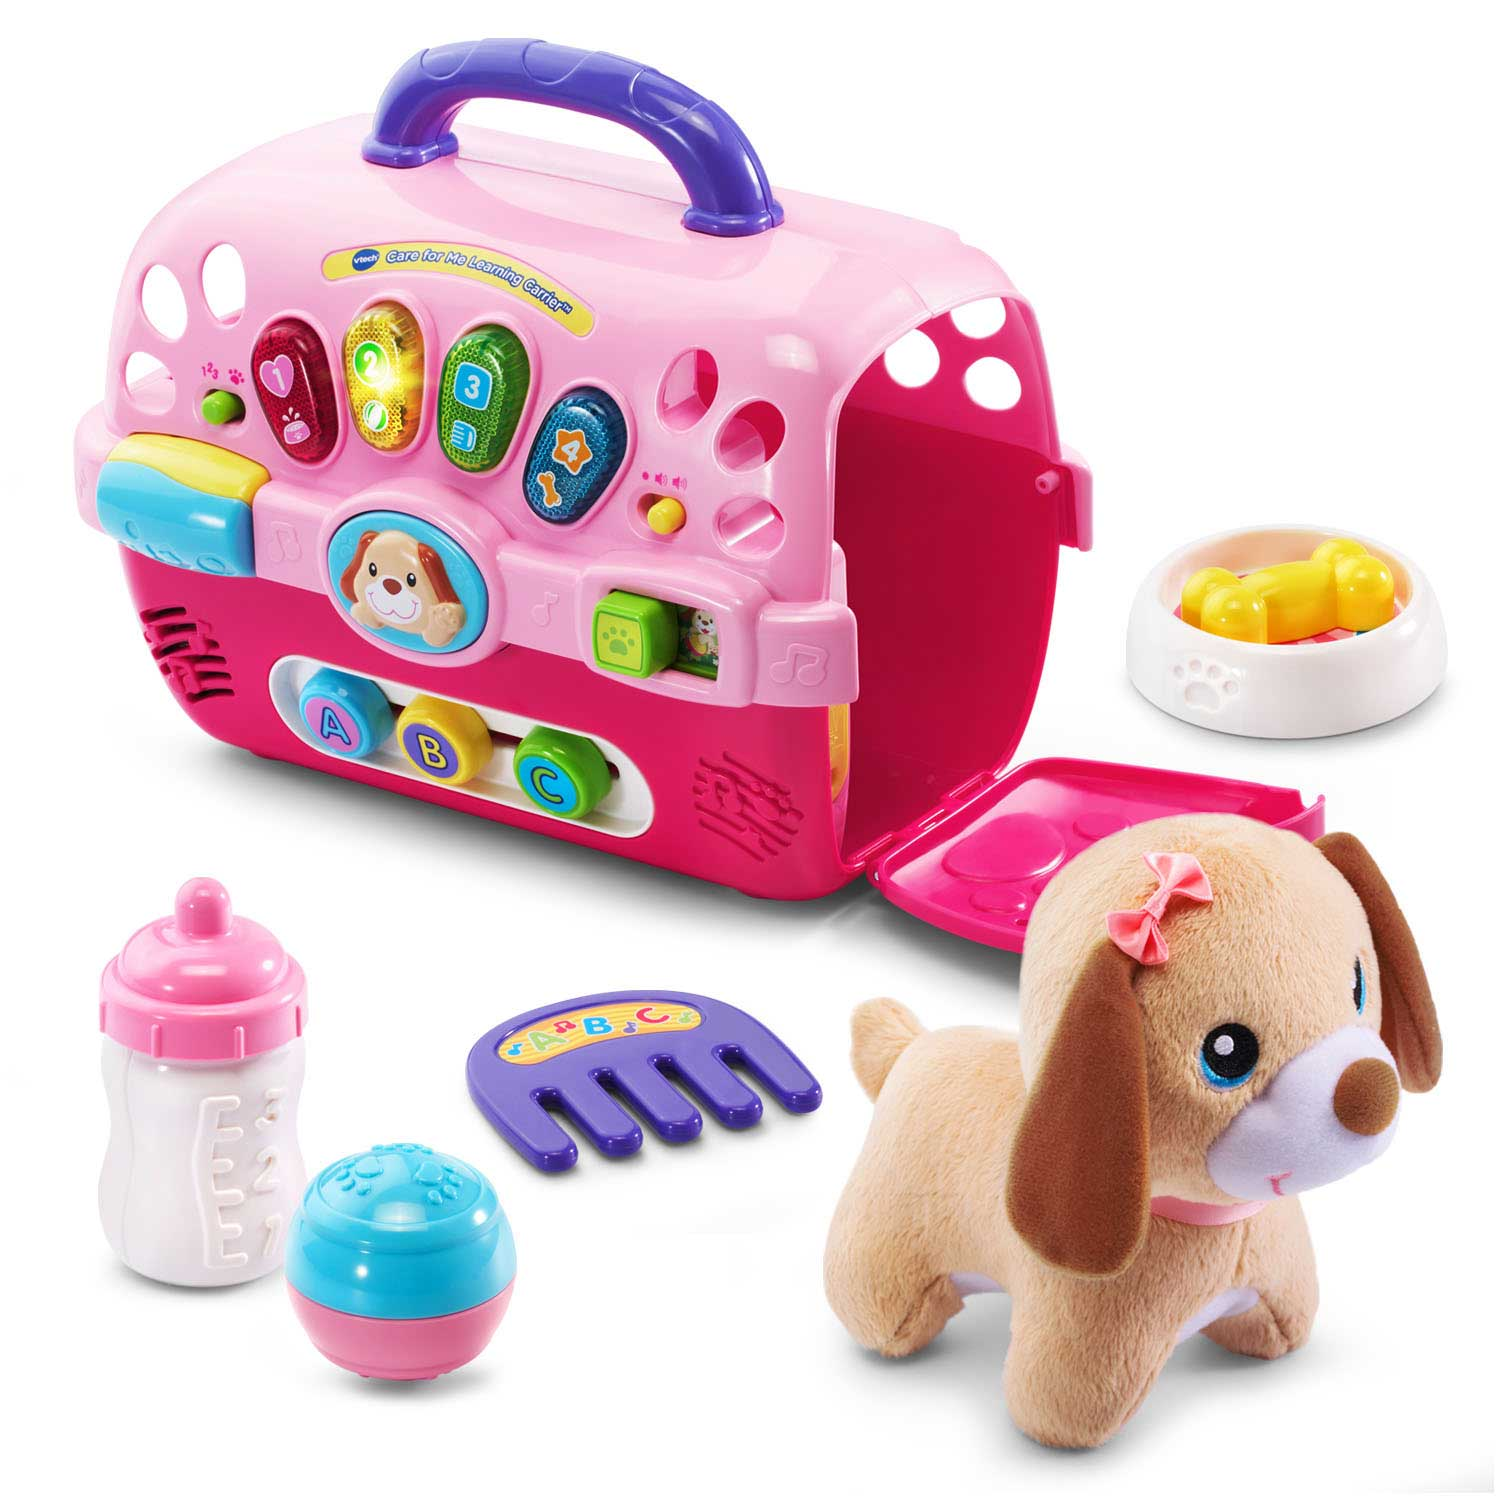 Toys For 3 And 6 : Vtech adds exciting new products to award winning baby